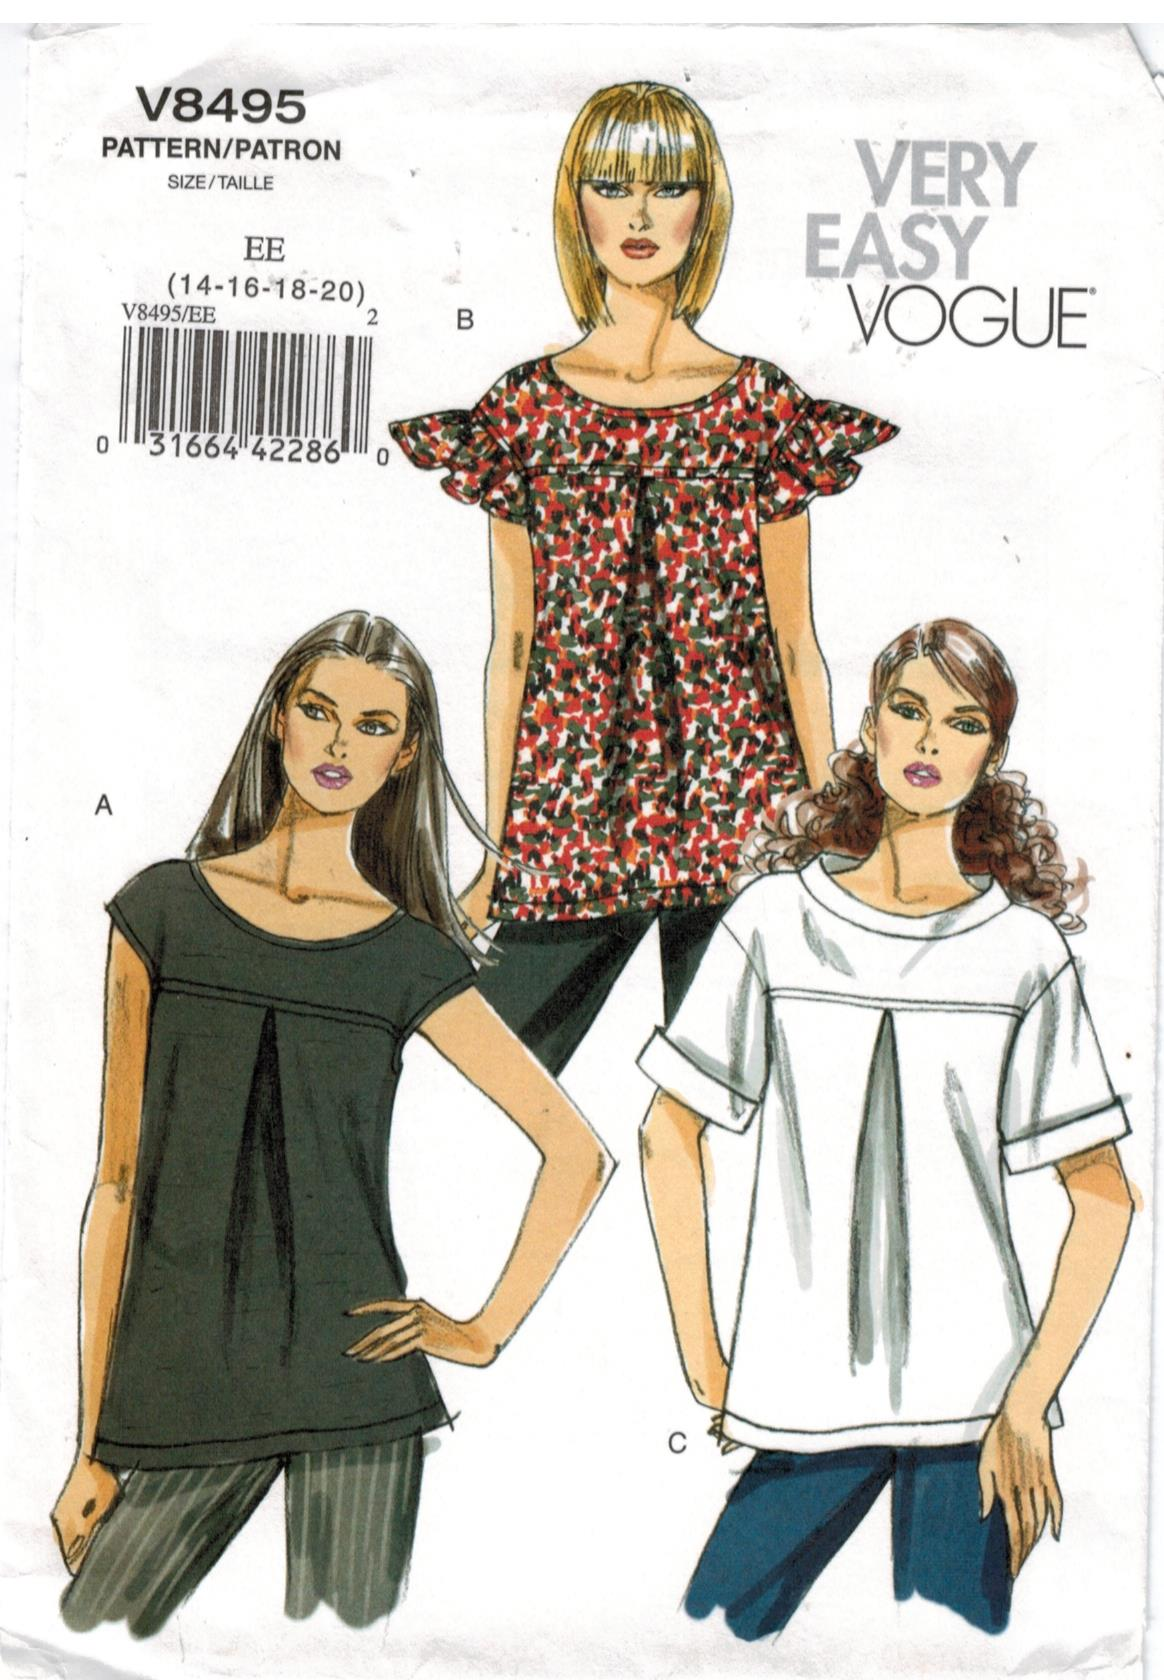 Vogue Pattern 12 Very Easy Vogue Pullover Tops for Misses size ...